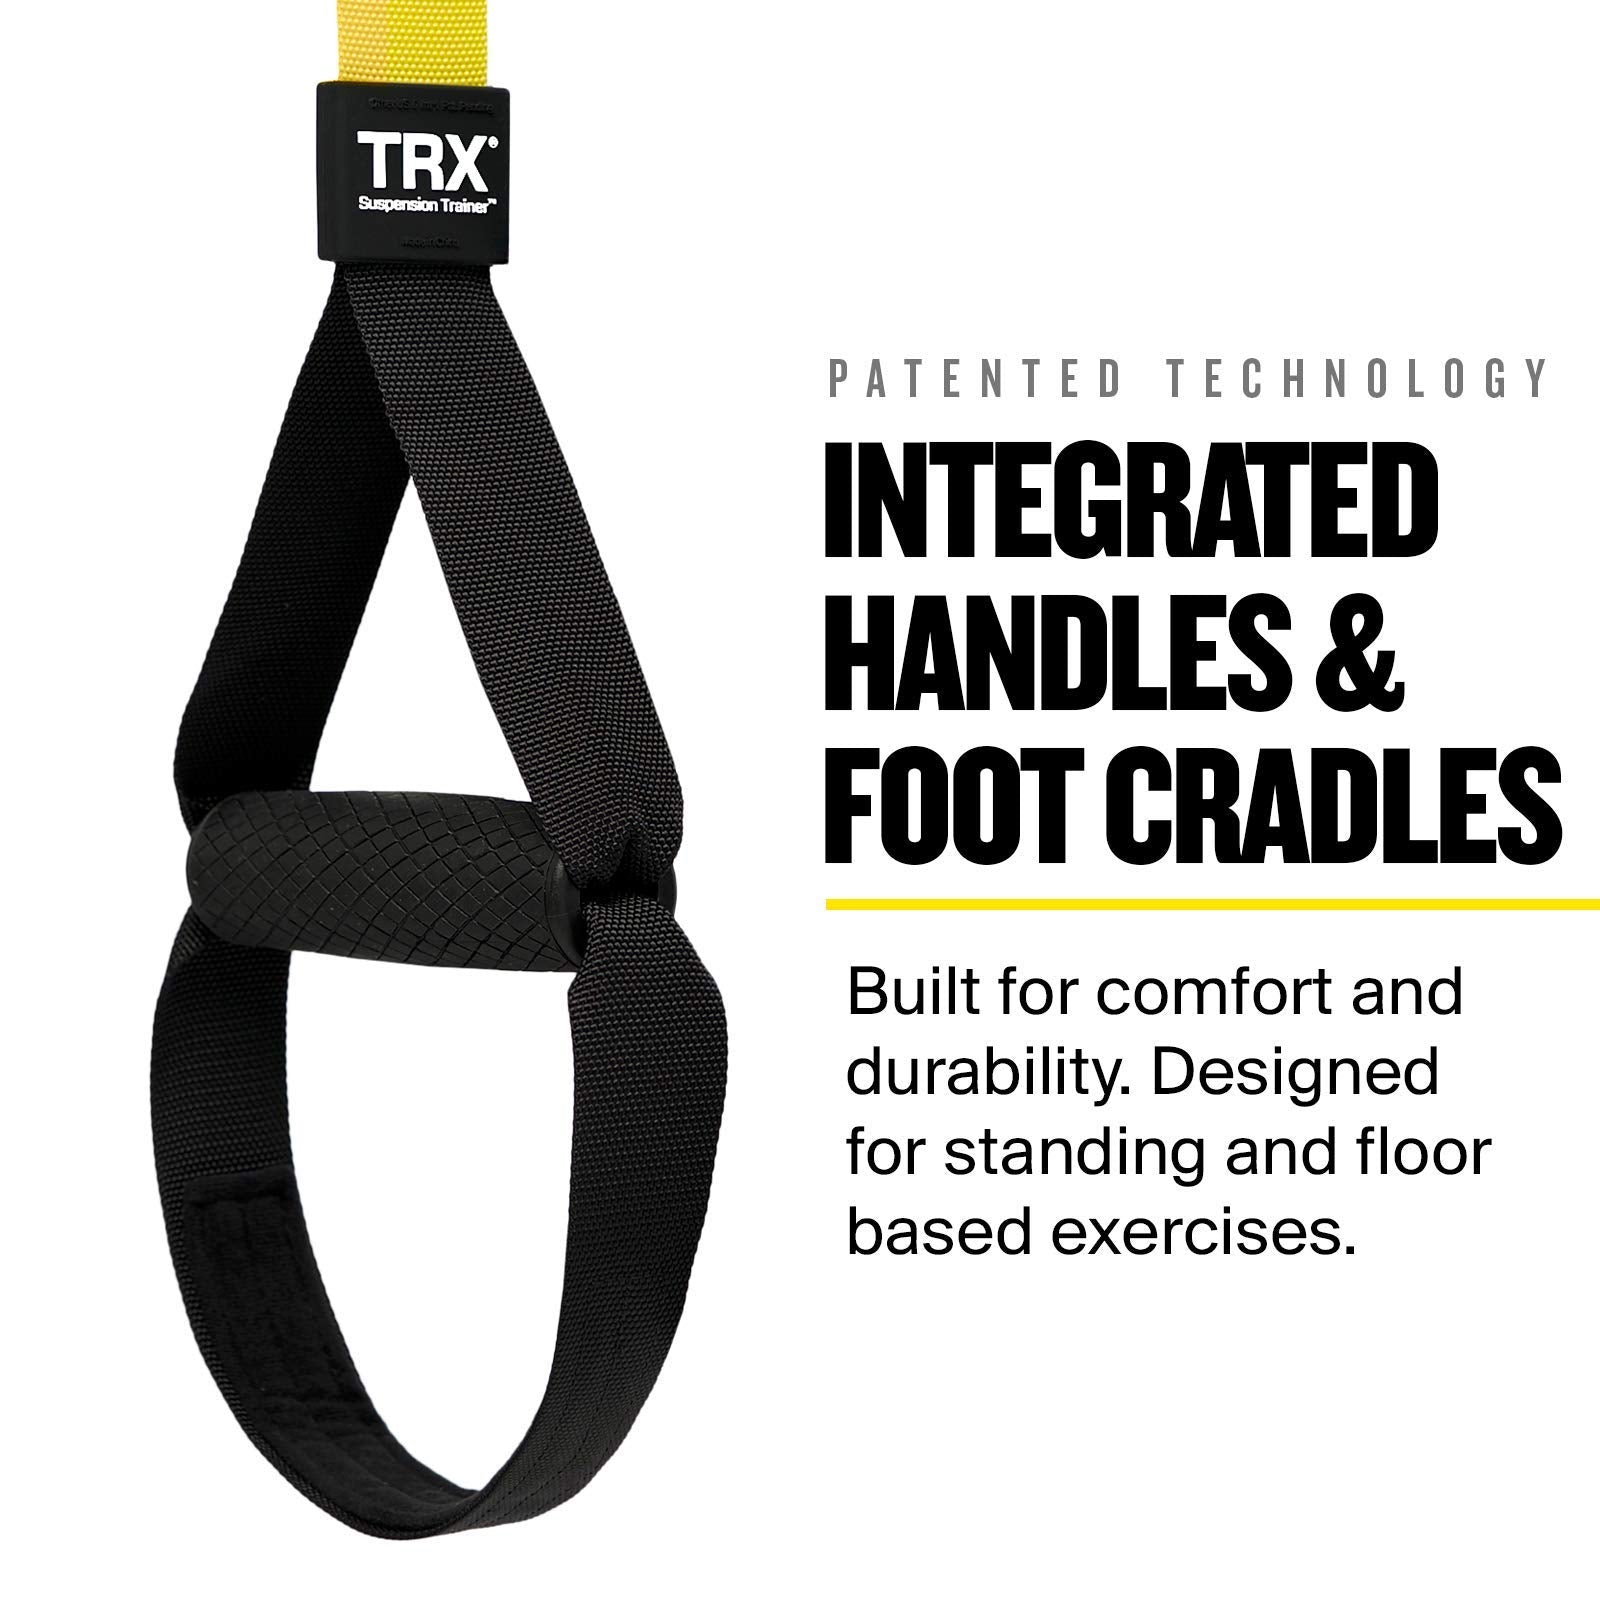 TRX PRO3 Suspension Trainer System Design & Durability| Includes Three Anchor Solutions, 8 Video Workouts & 8-Week Workout Program - yrGear